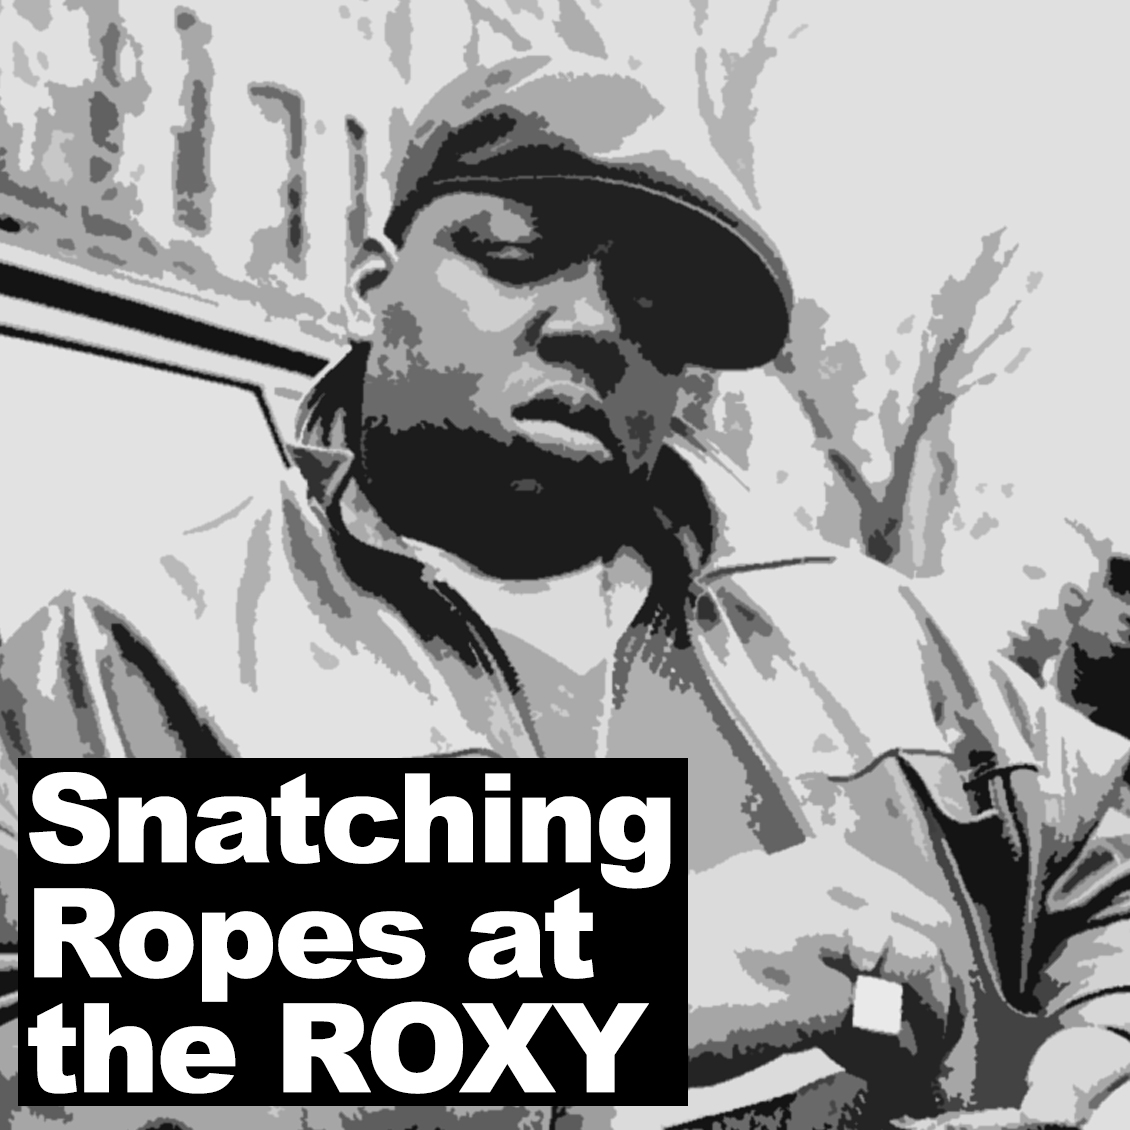 biggie smalls snatching ropes